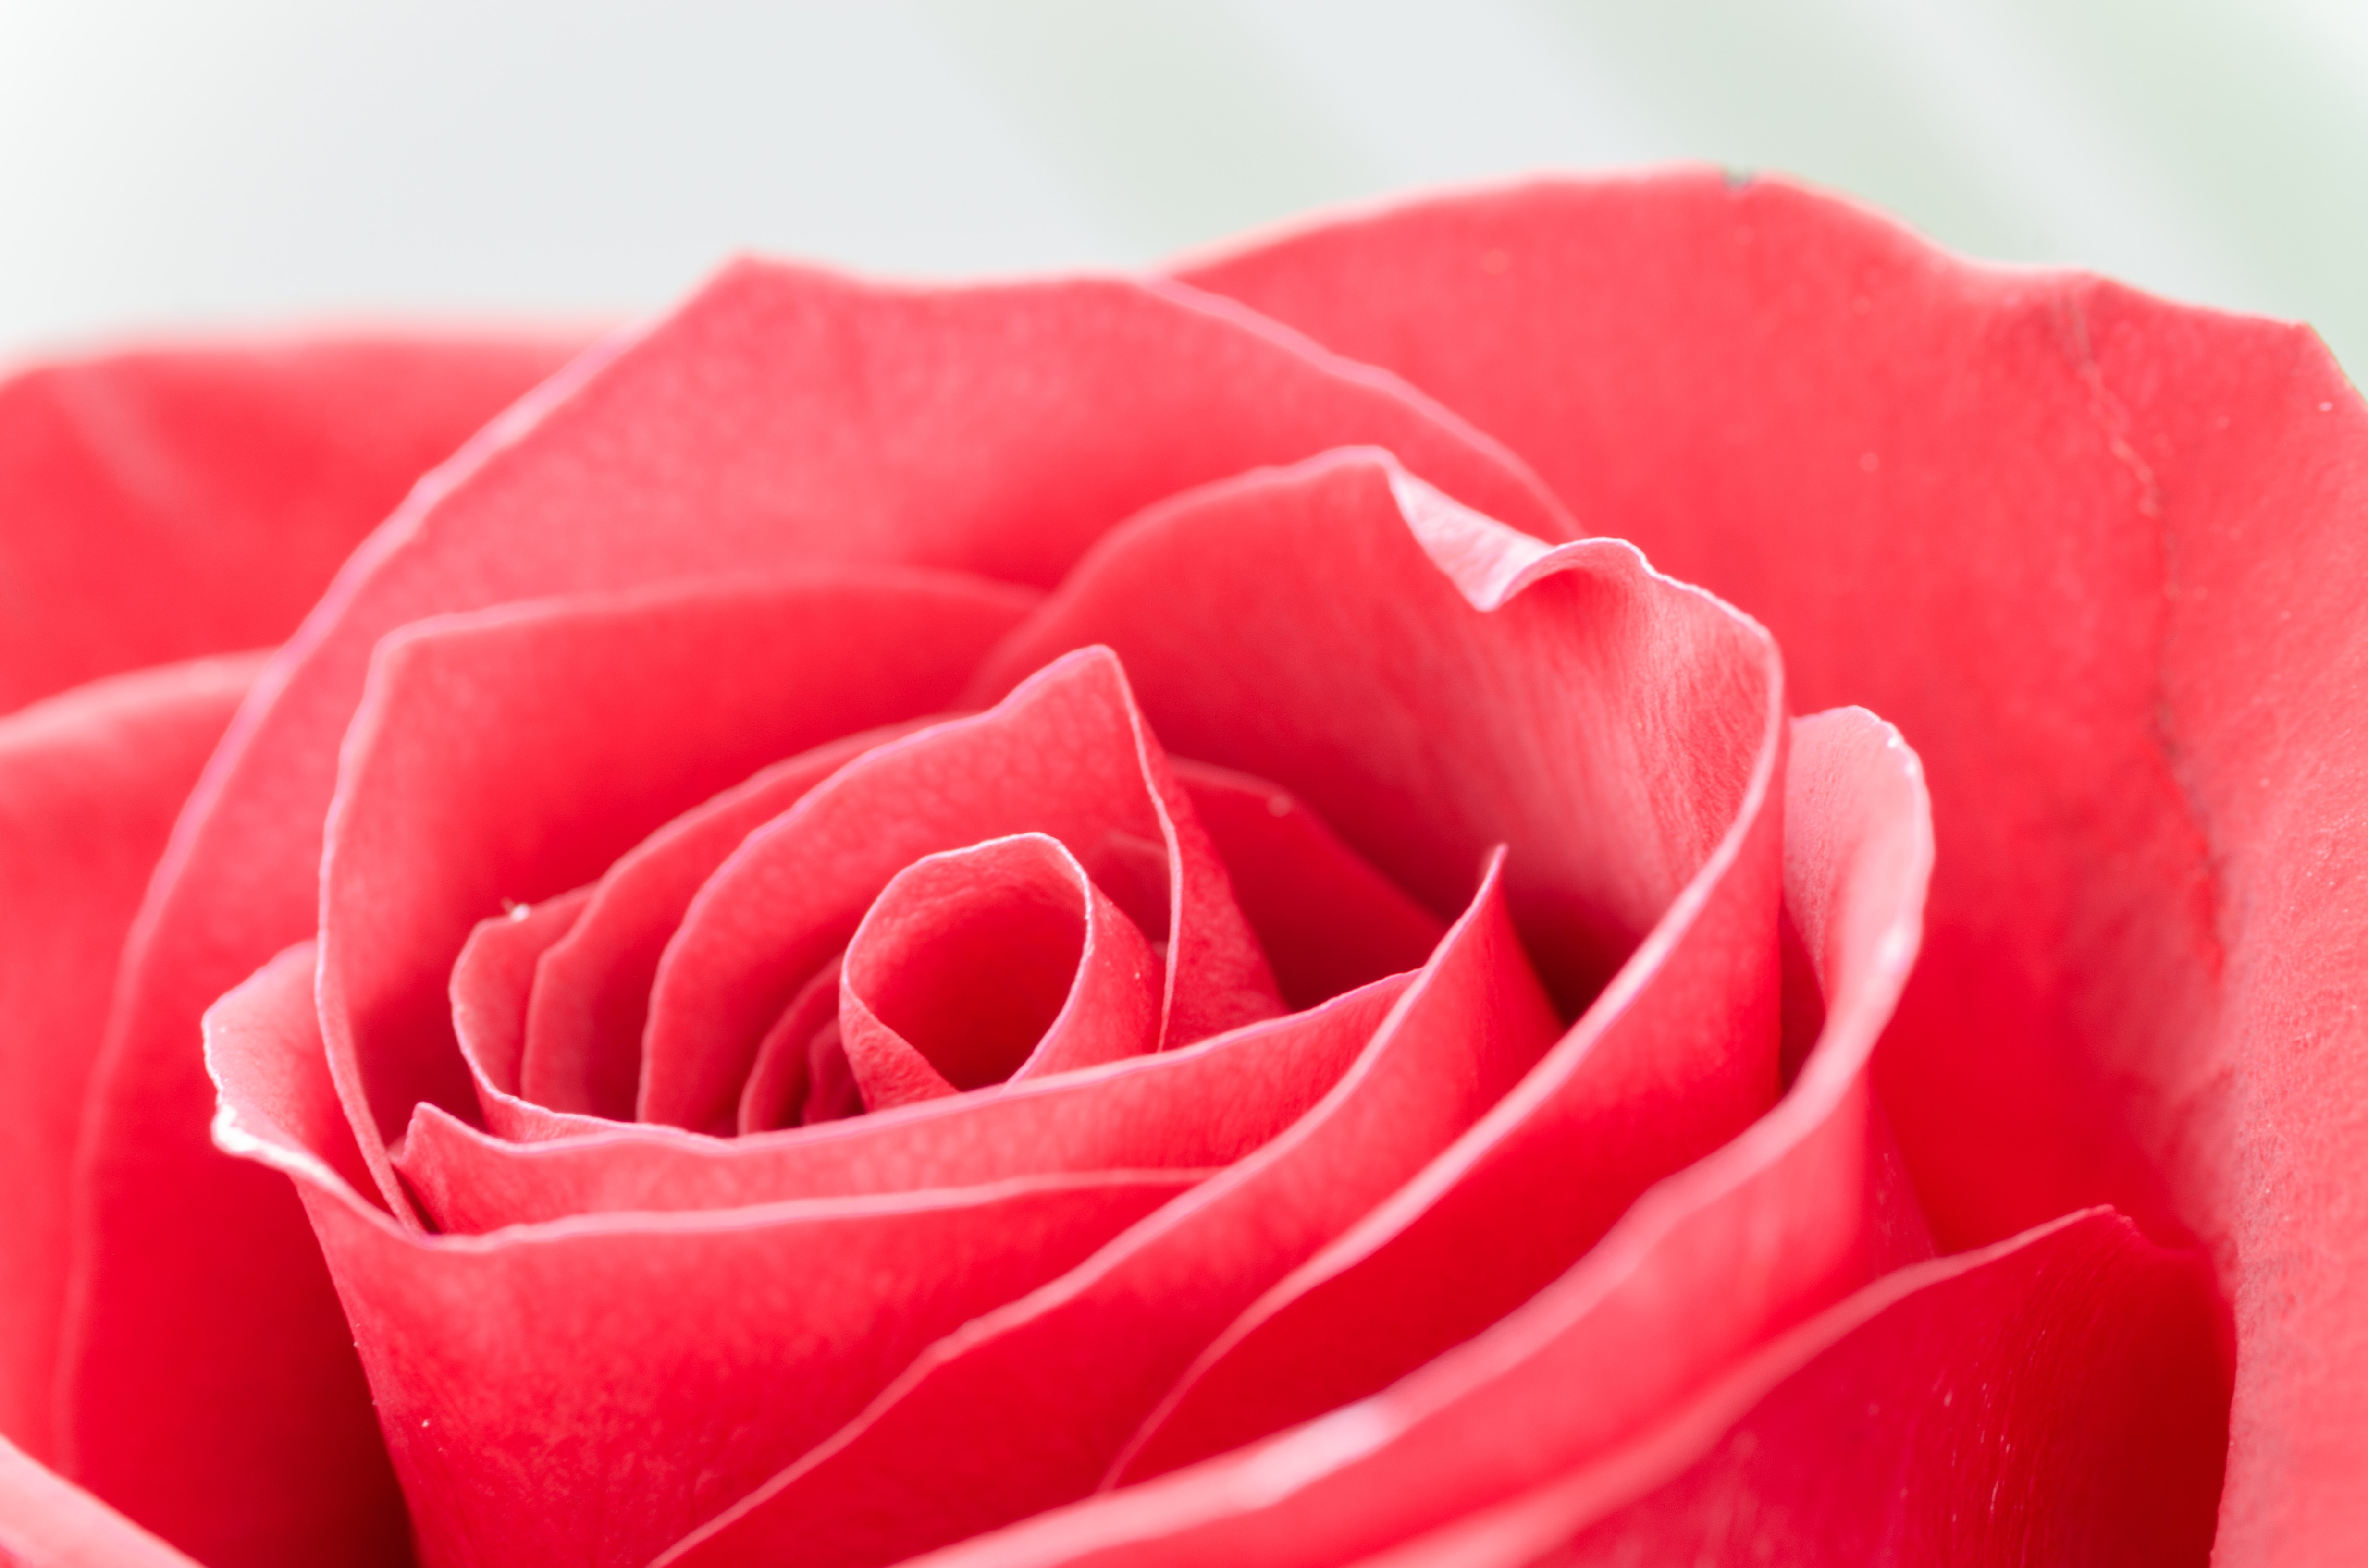 Close-Up Photography of Flower, Growth, Fresh, Fragrant, Macro, HQ Photo